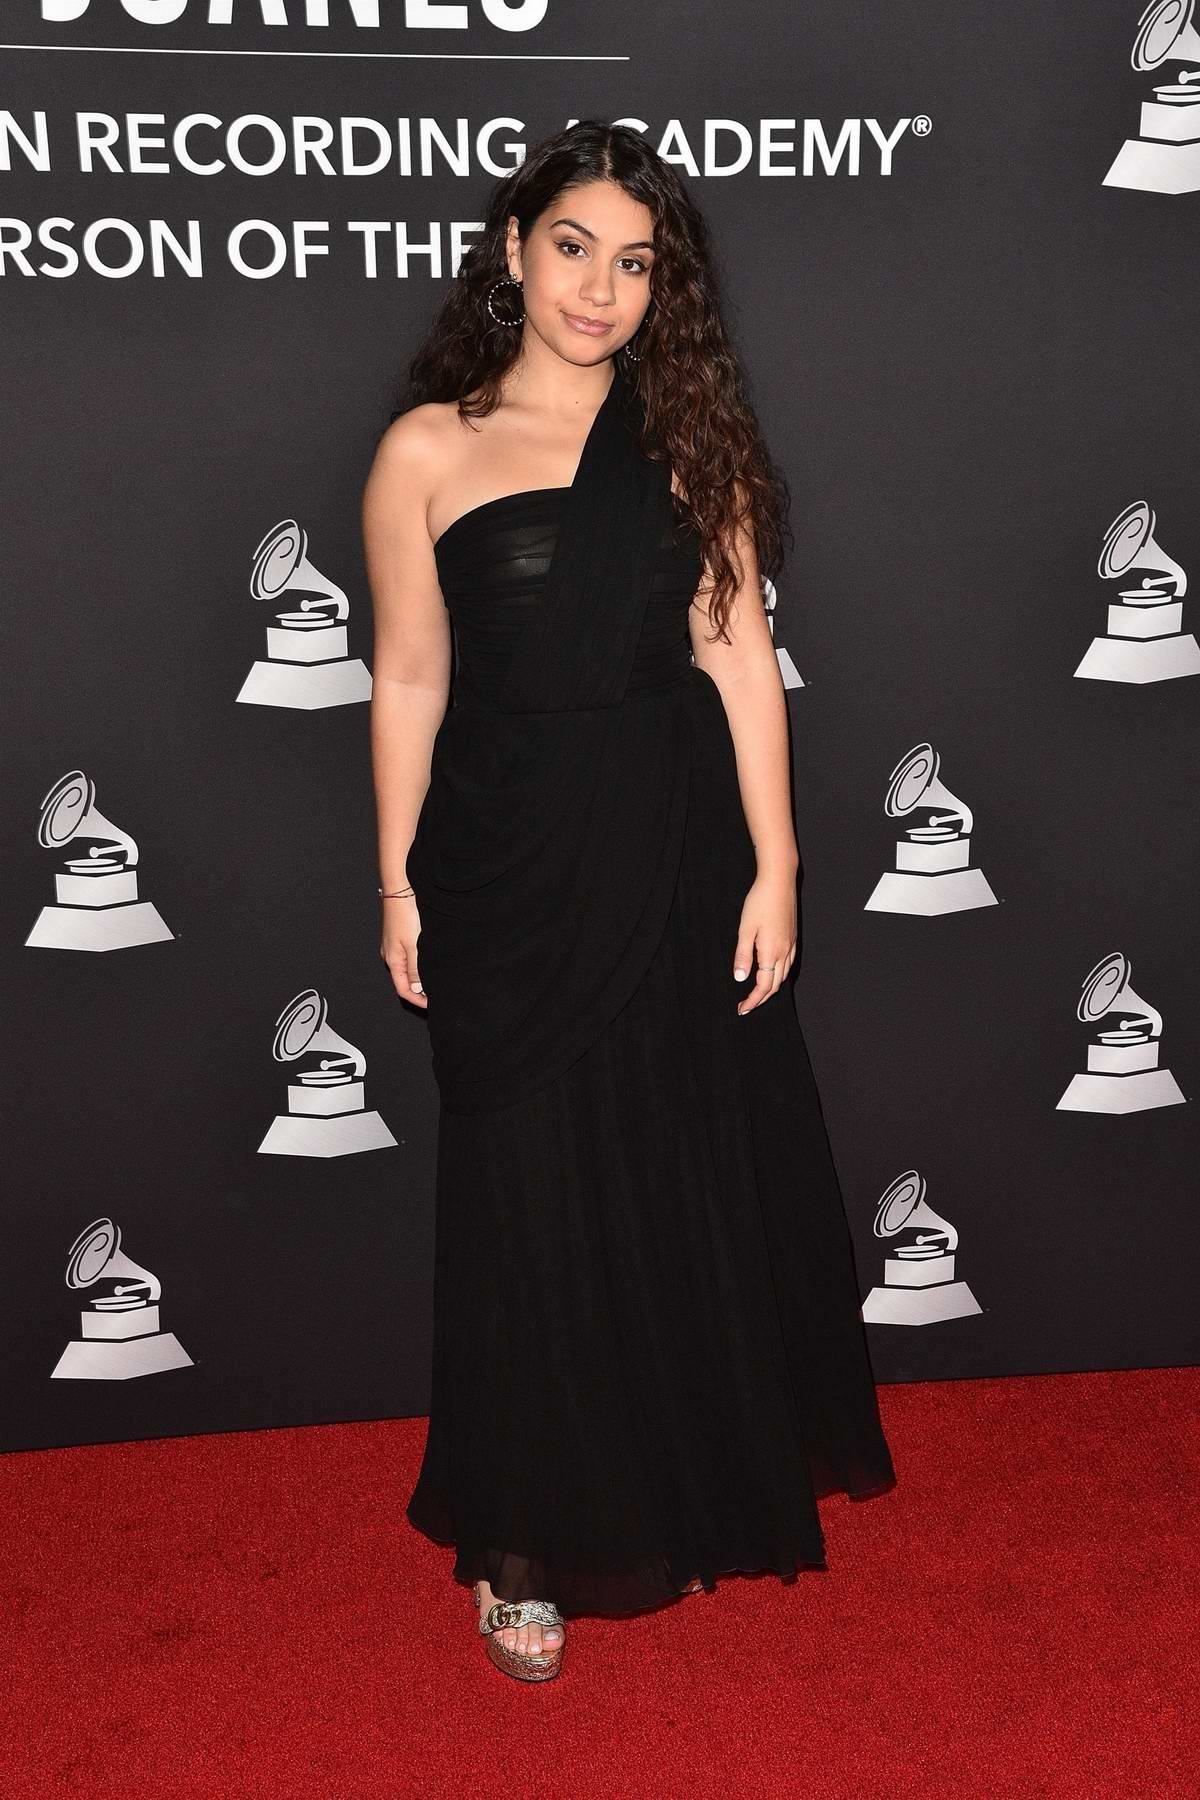 Alessia Cara attends the 2019 Latin Recording Academy Person of the Year Gala in Las Vegas, NV